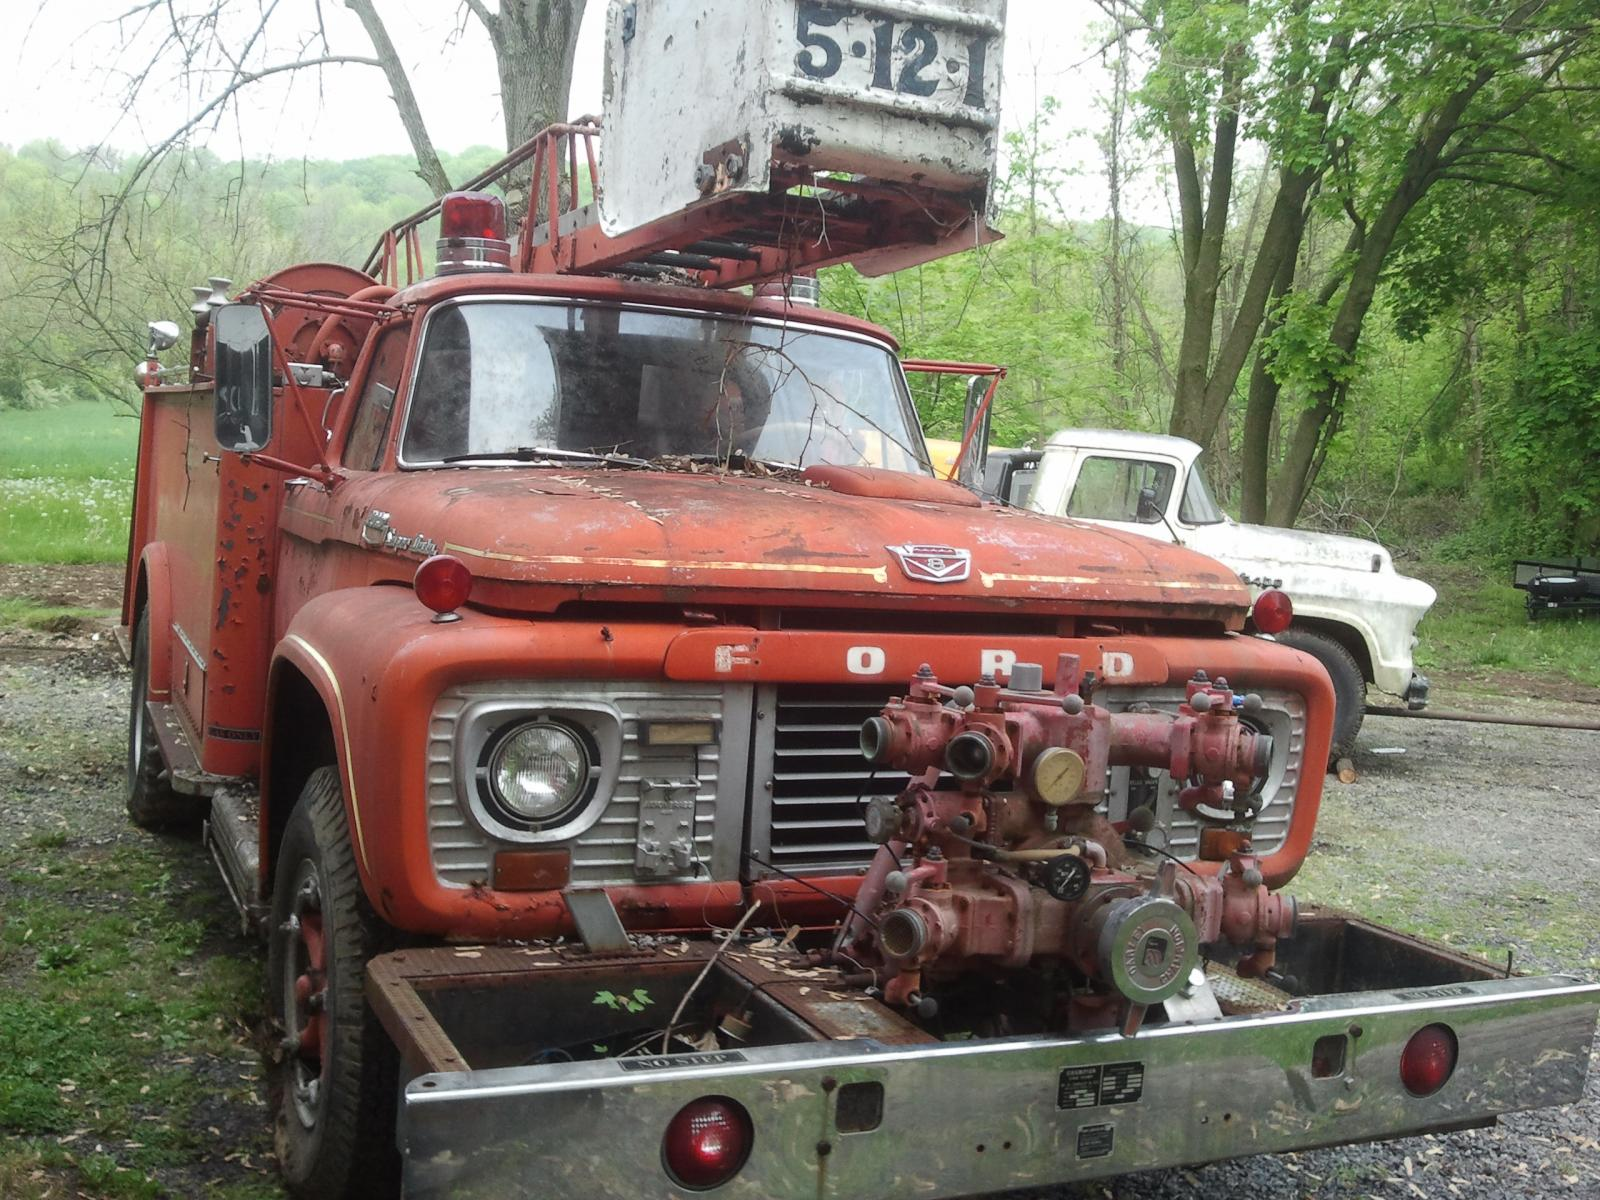 1964 Ford F850 Fire Truck $1200 - Trucks for Sale ...